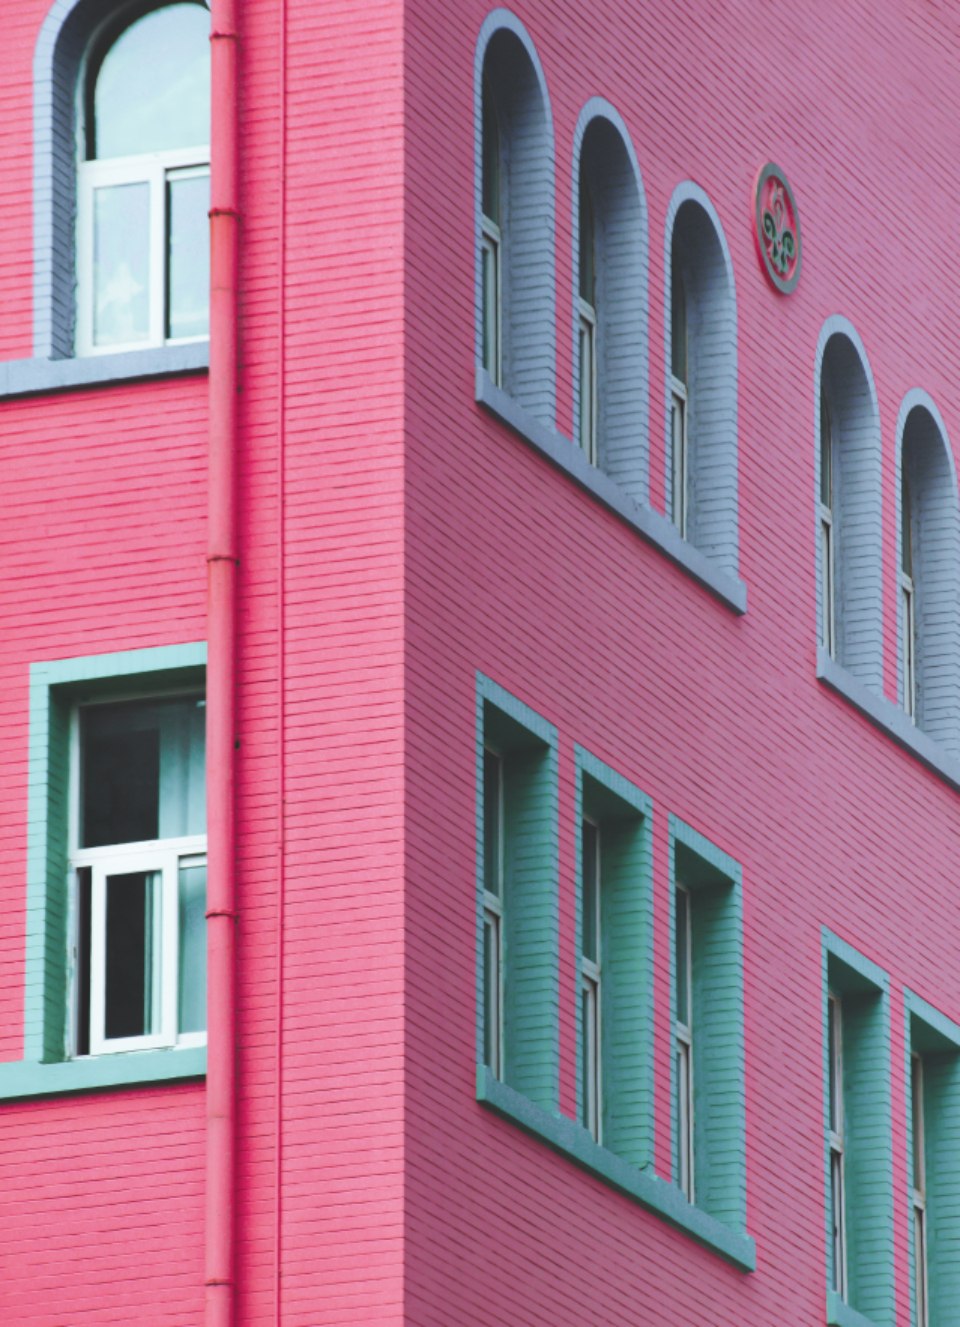 colorful exterior wall windows architecture color facade apartment building pastel pink brick painted classic design